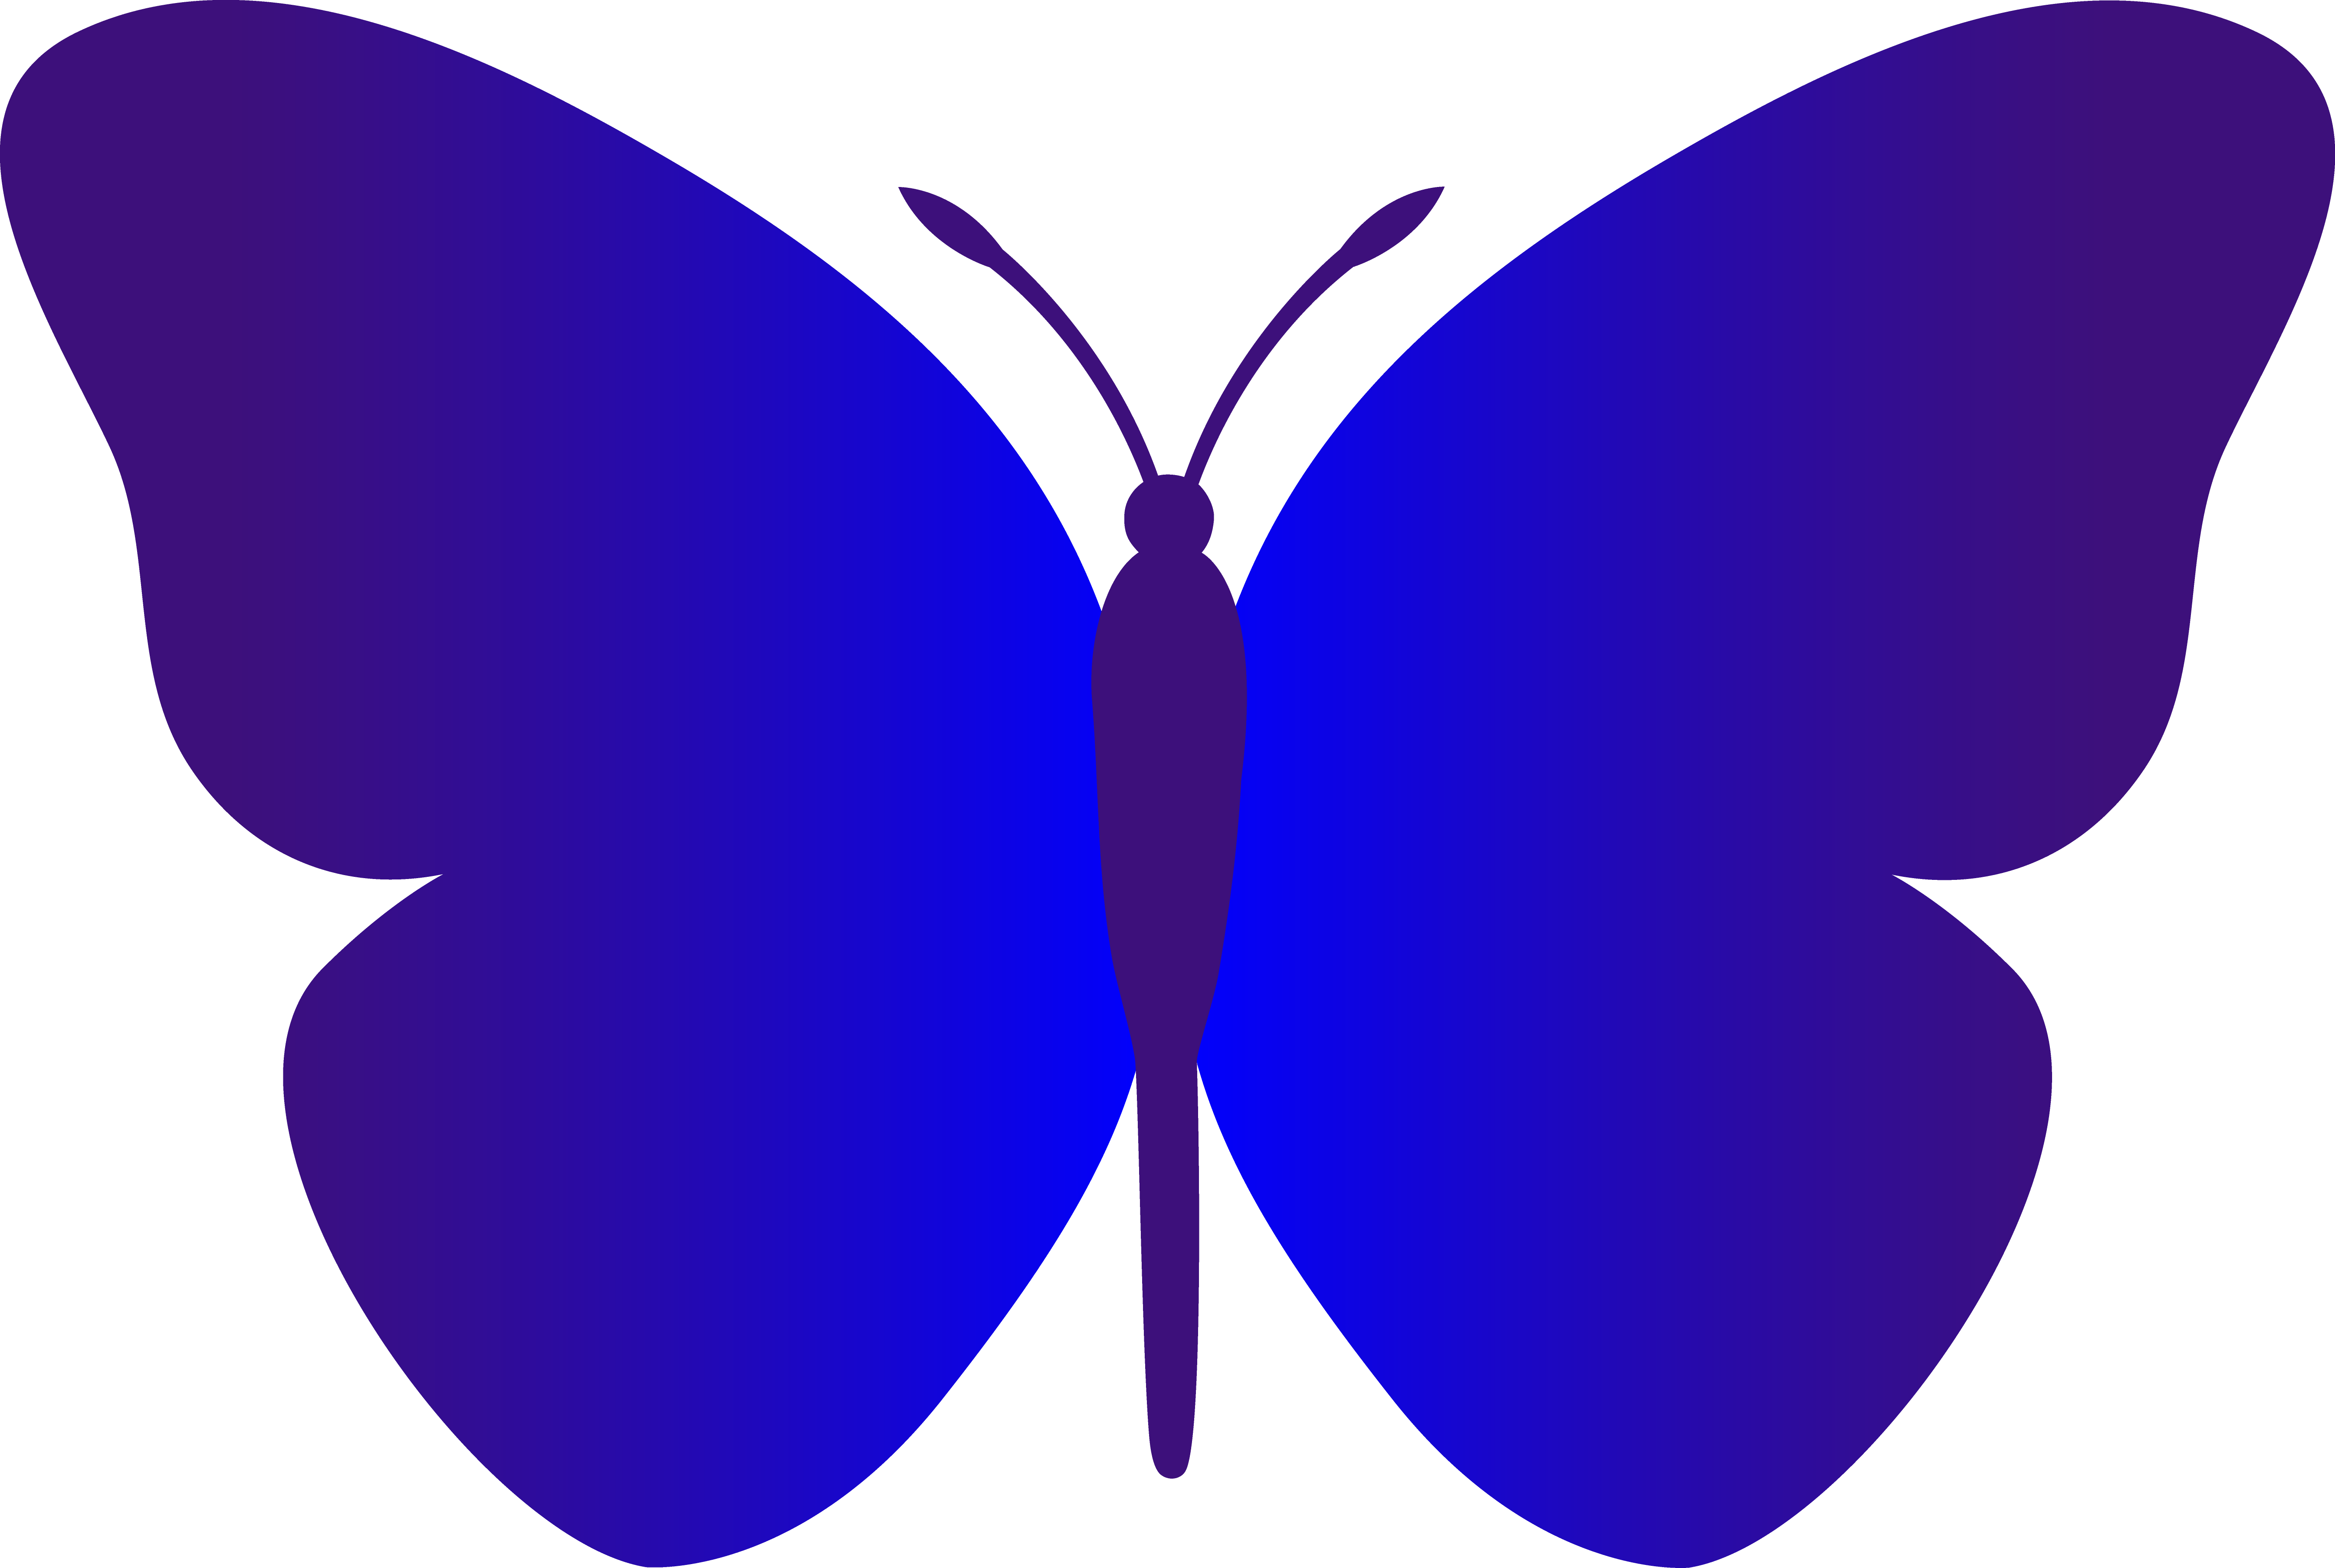 Infinity clipart butterfly. Collection of free butterflies